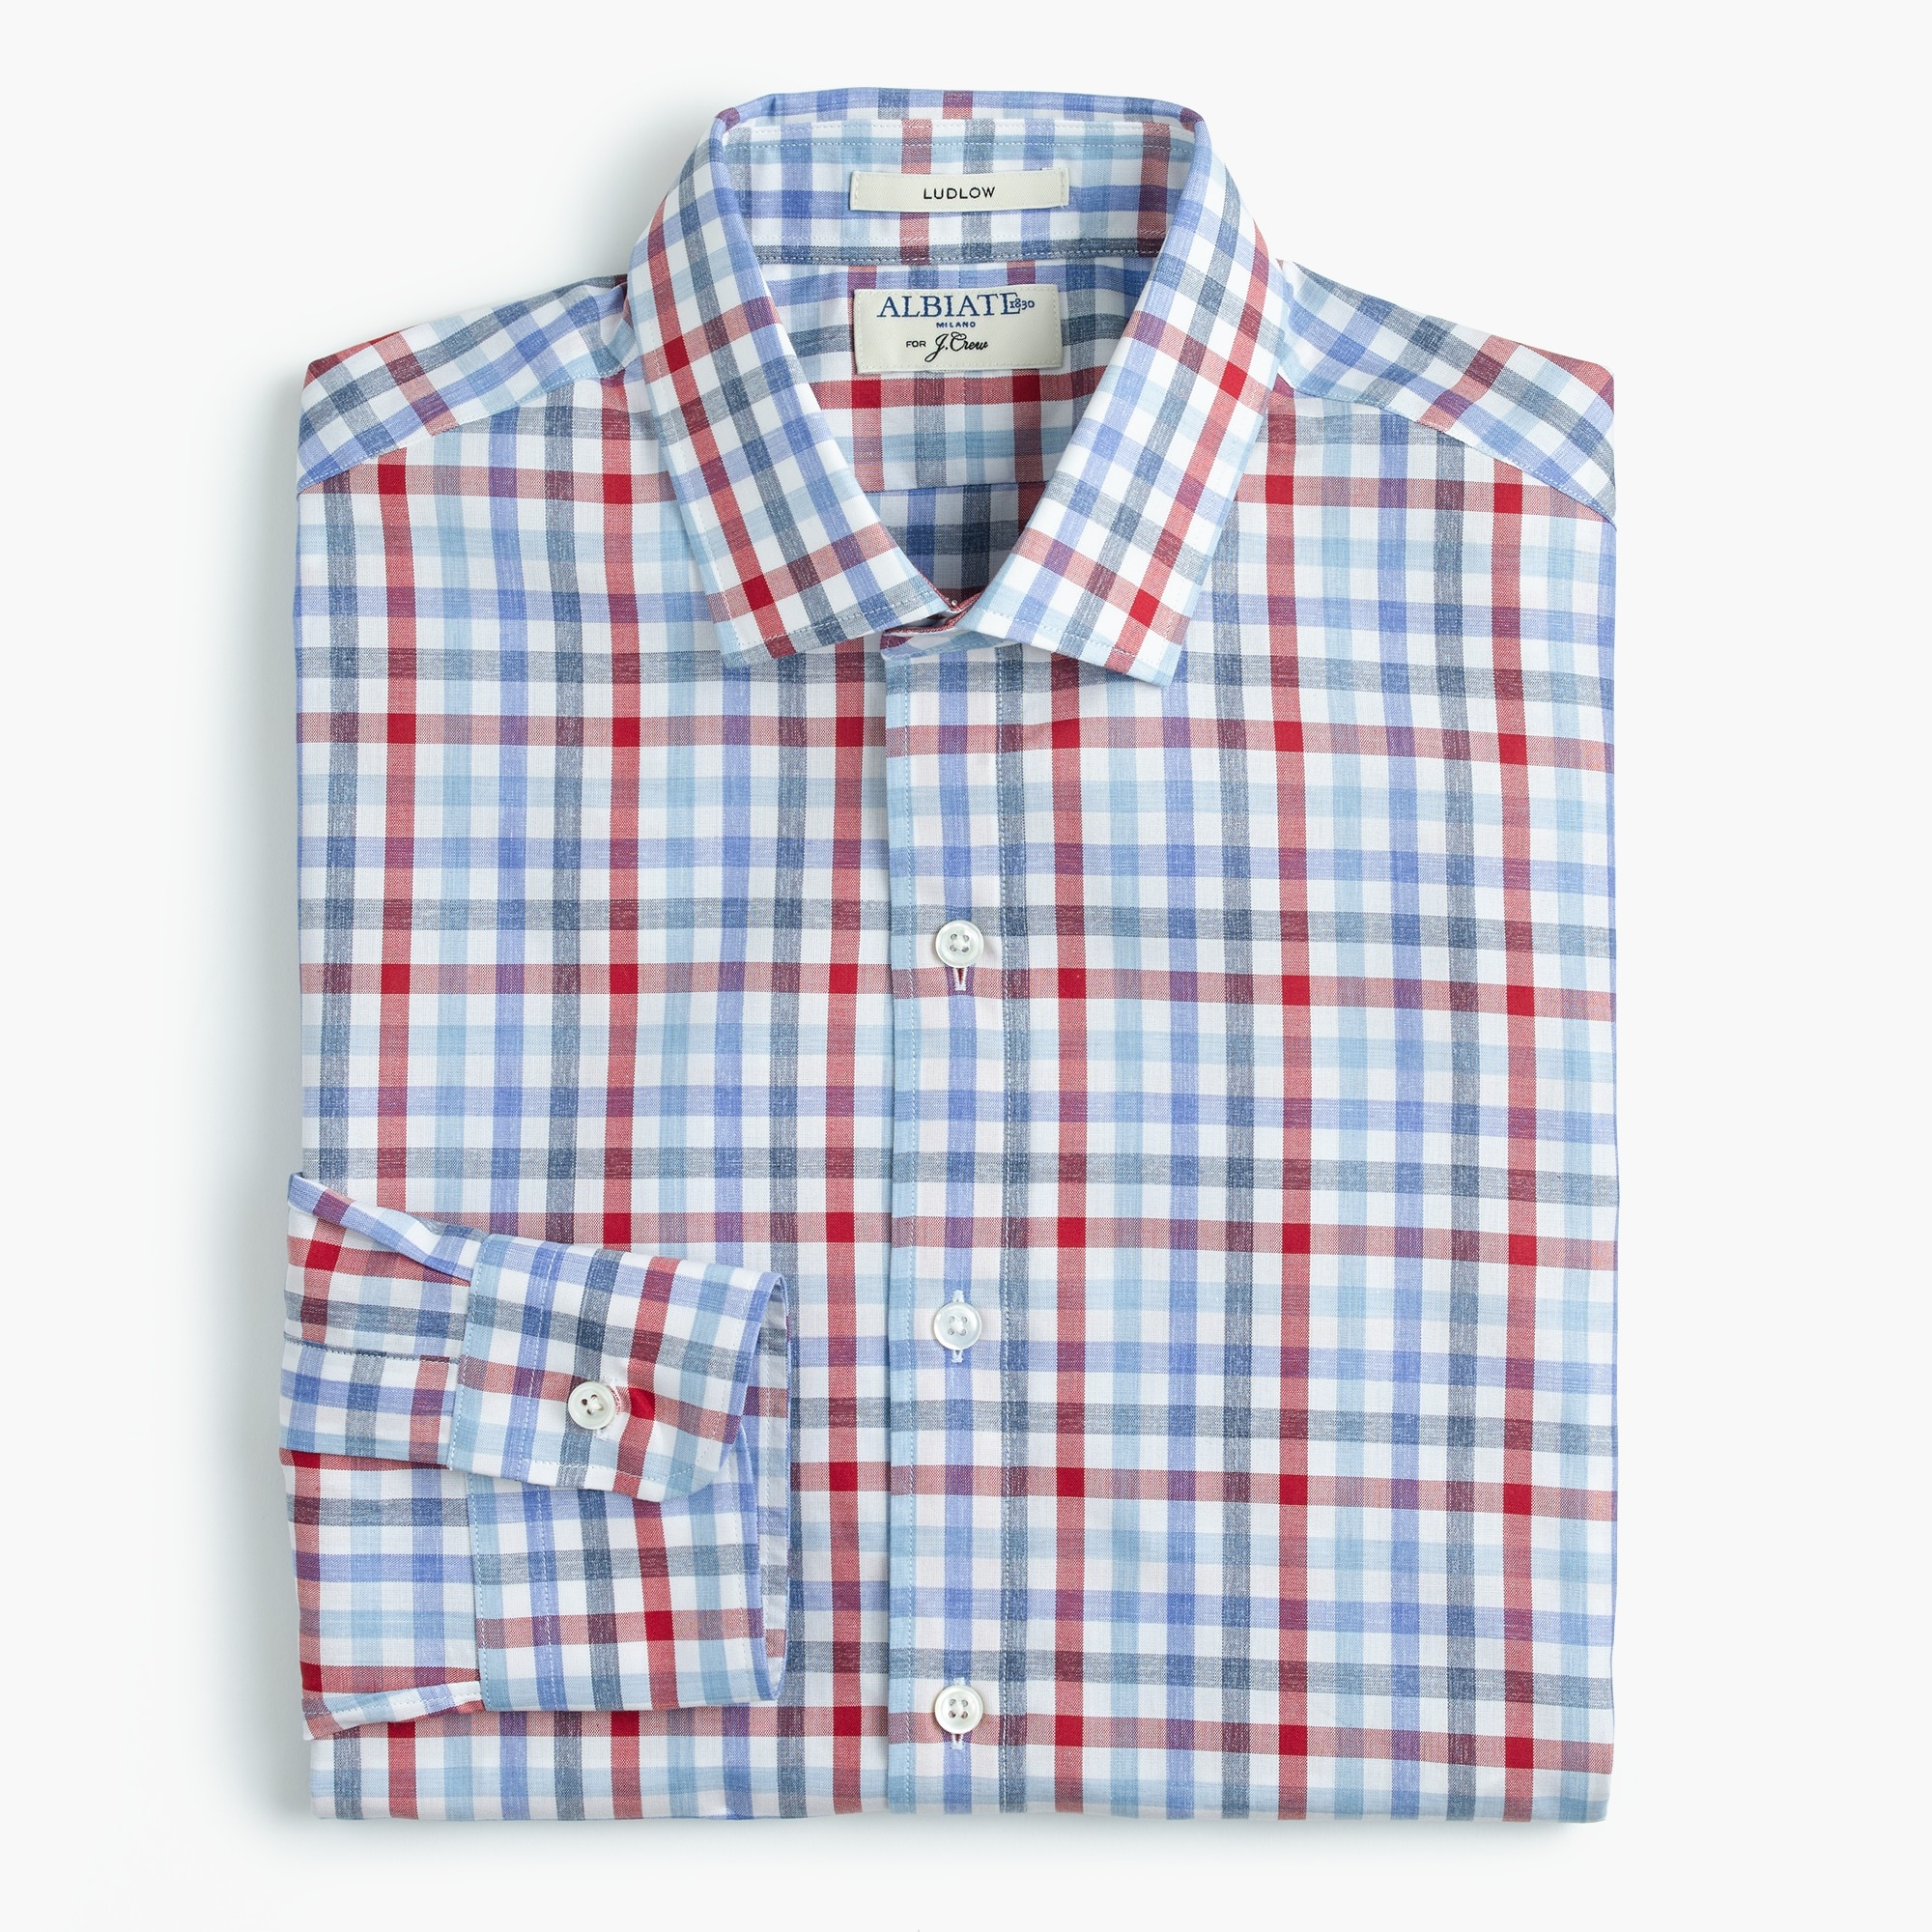 Albiate 1830 for J.Crew Ludlow Slim-fit spread-collar shirt in tattersall